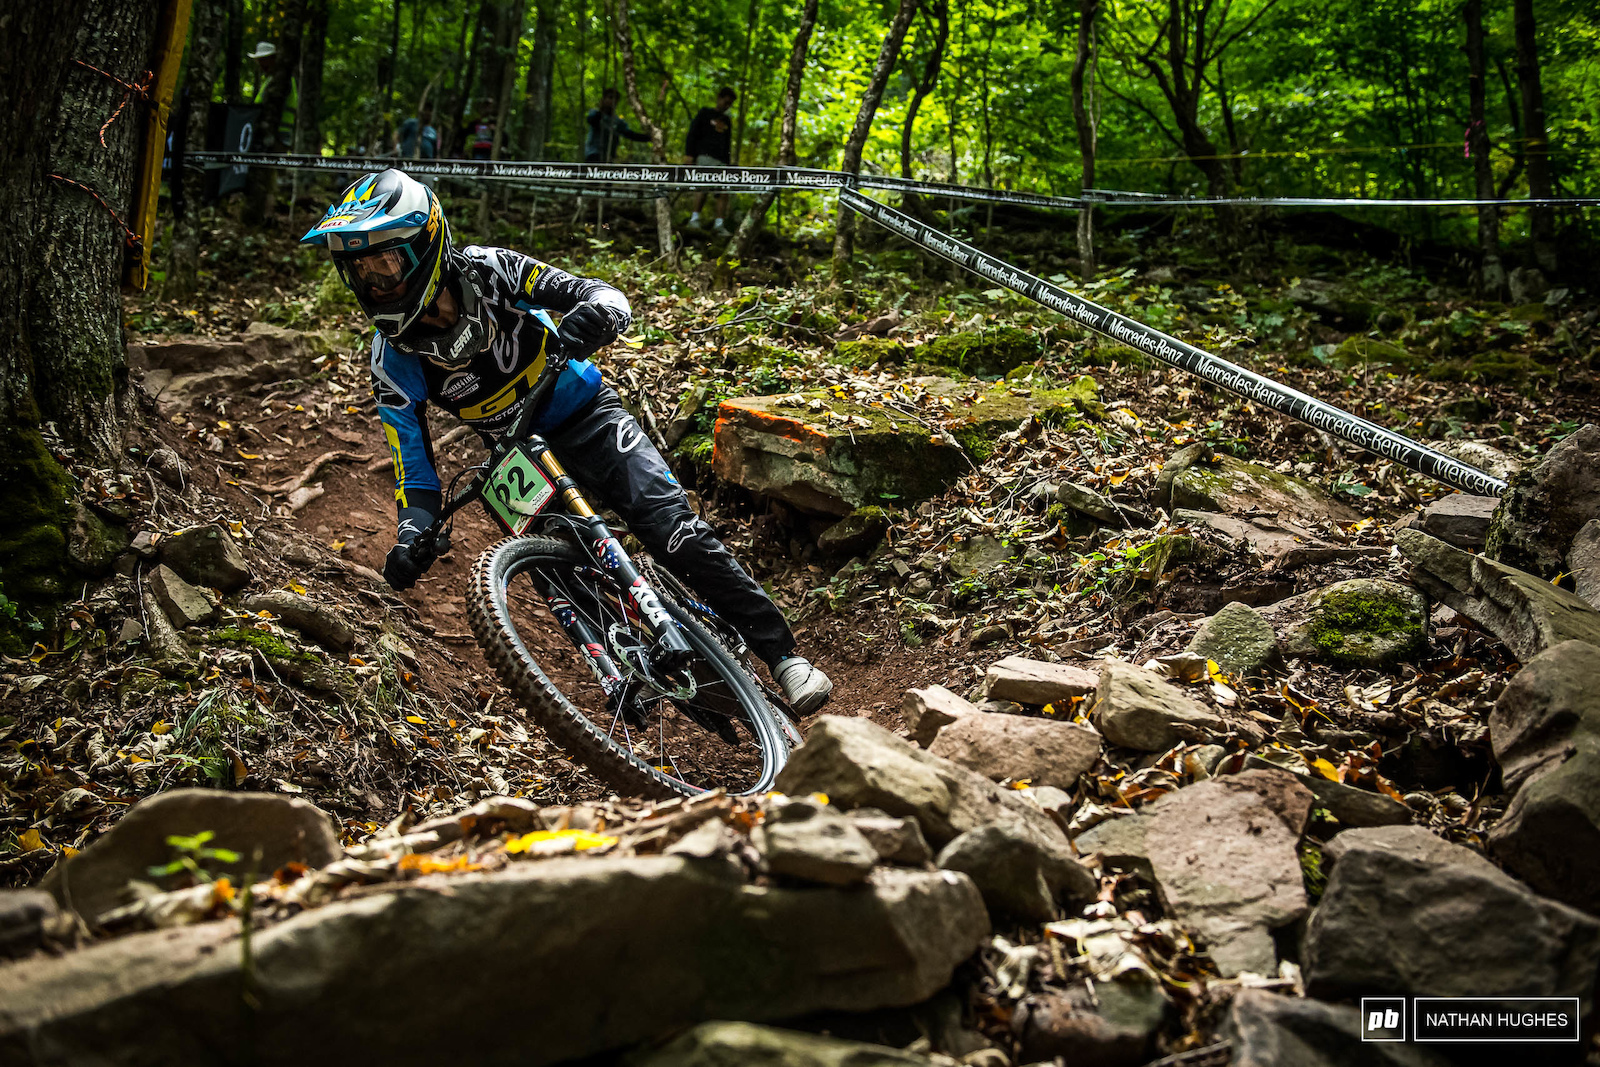 Young American Joseph Foresta has had a mixed season but is onto a good thing here. A top ten today bodes well.